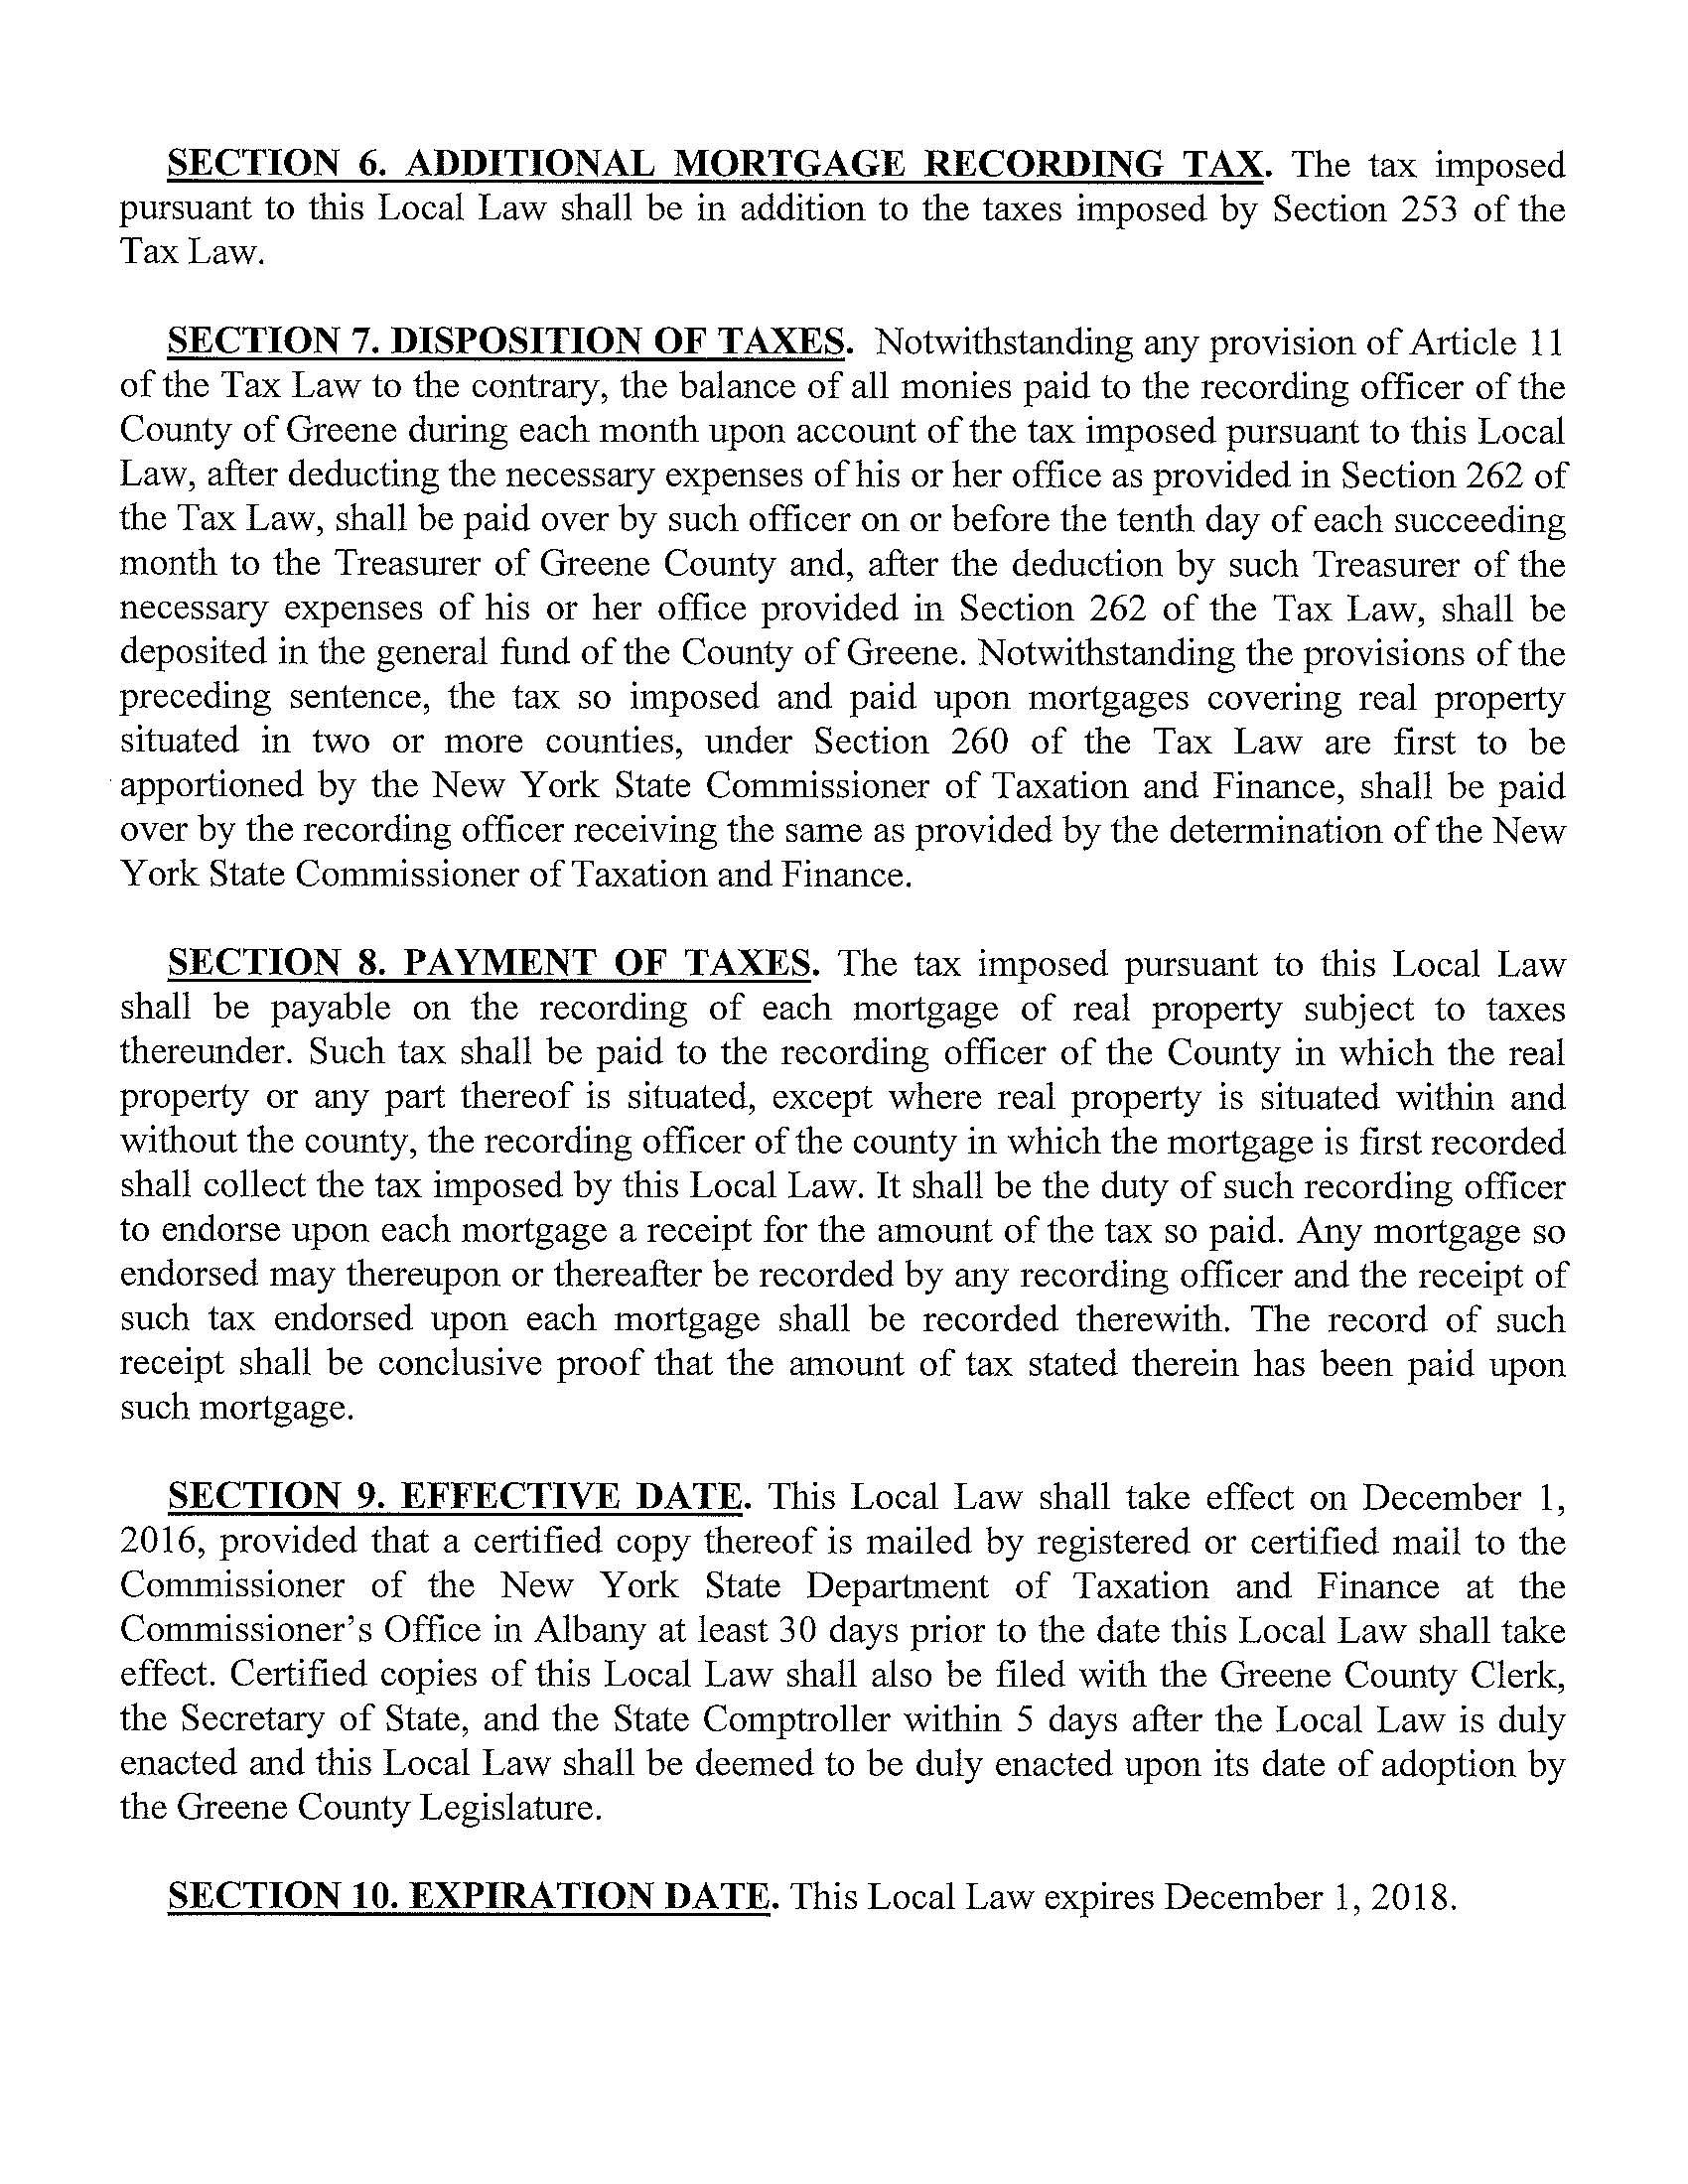 Notice of Public Hearing with Local Law #1 of 2016_Page_3